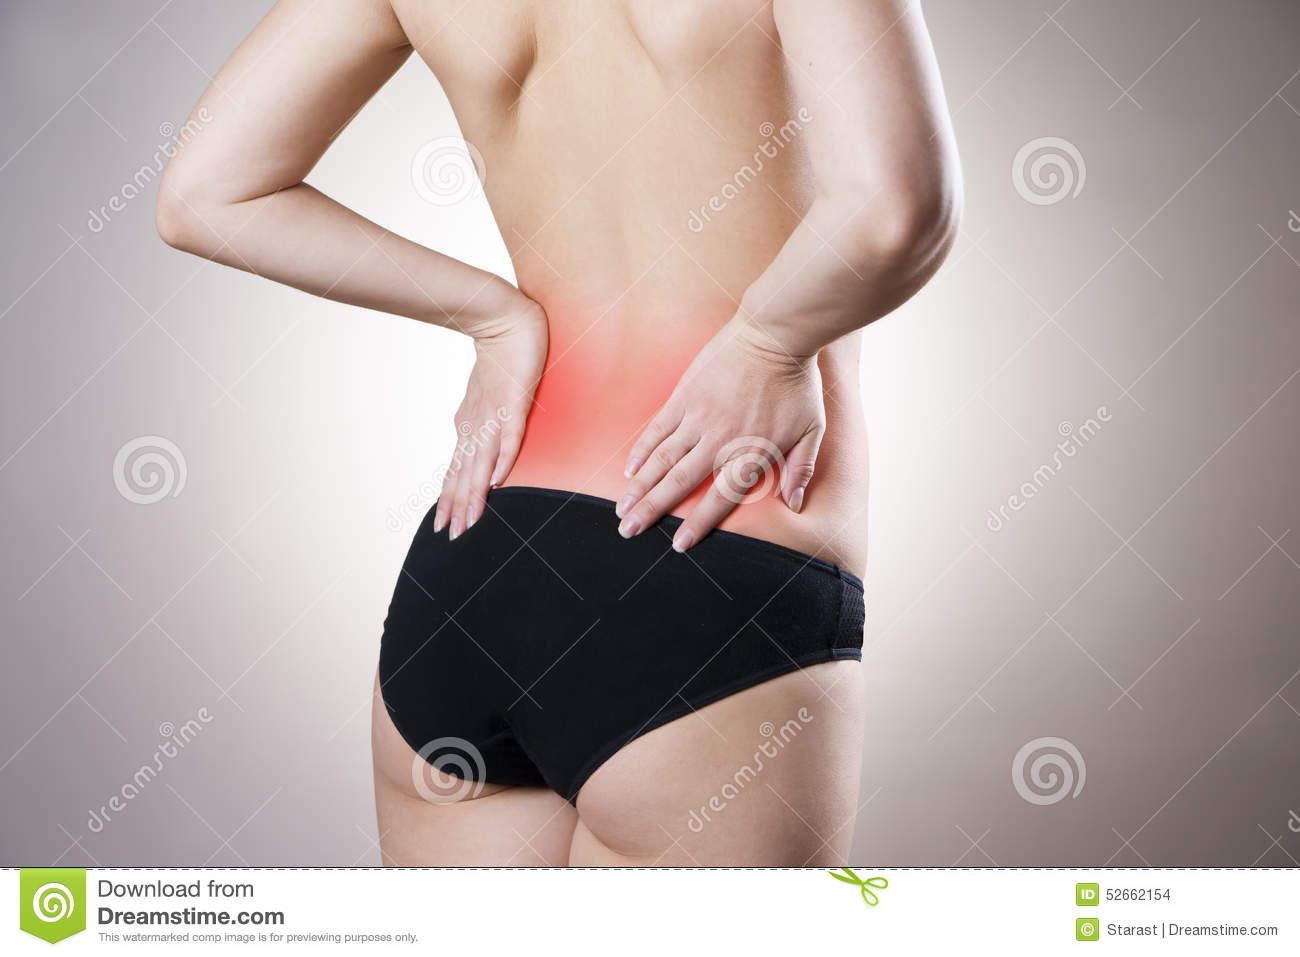 Pain In Lower Back Of Women Stock Photo - Image: 52662154